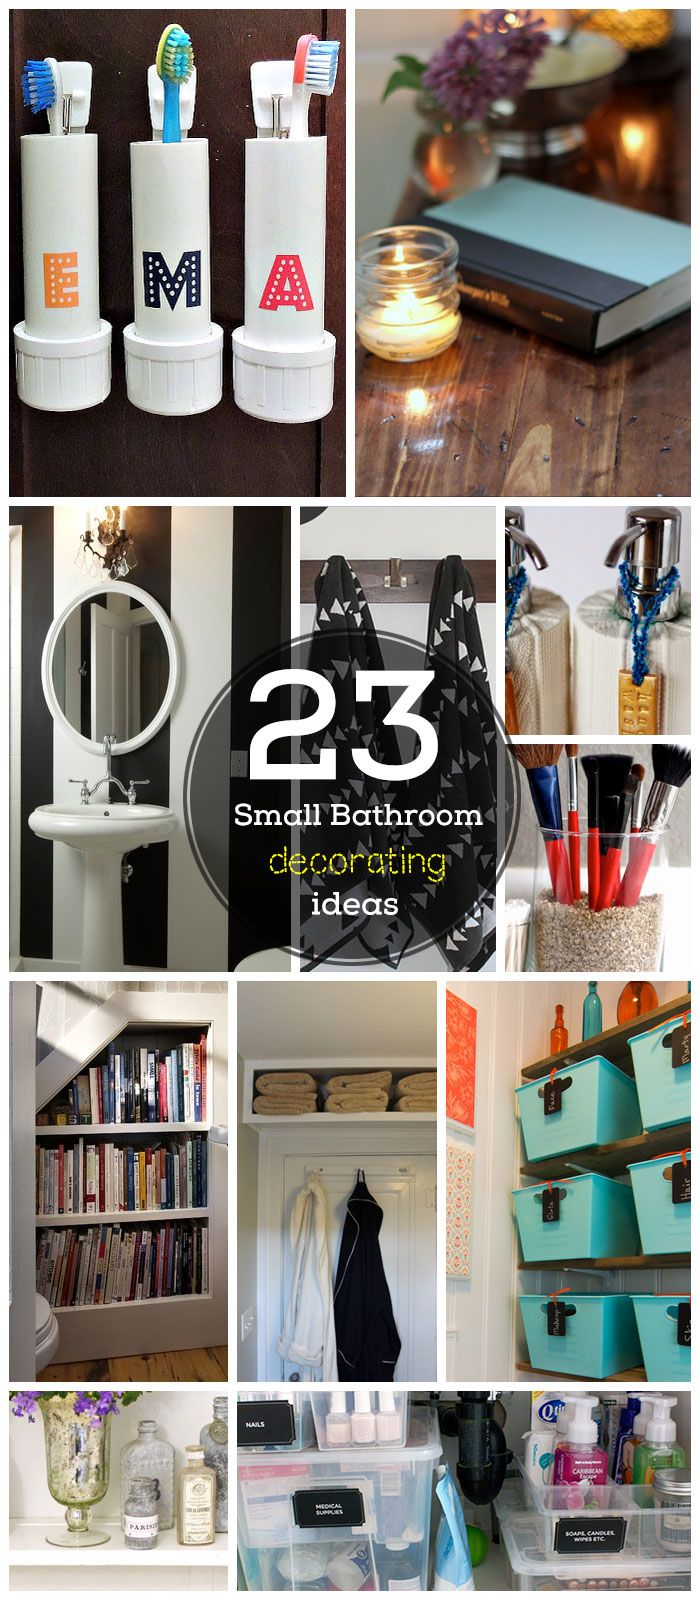 Bathroom Decorating Ideas For Less 23 small bathroom decorating ideas on a budget   small bathroom